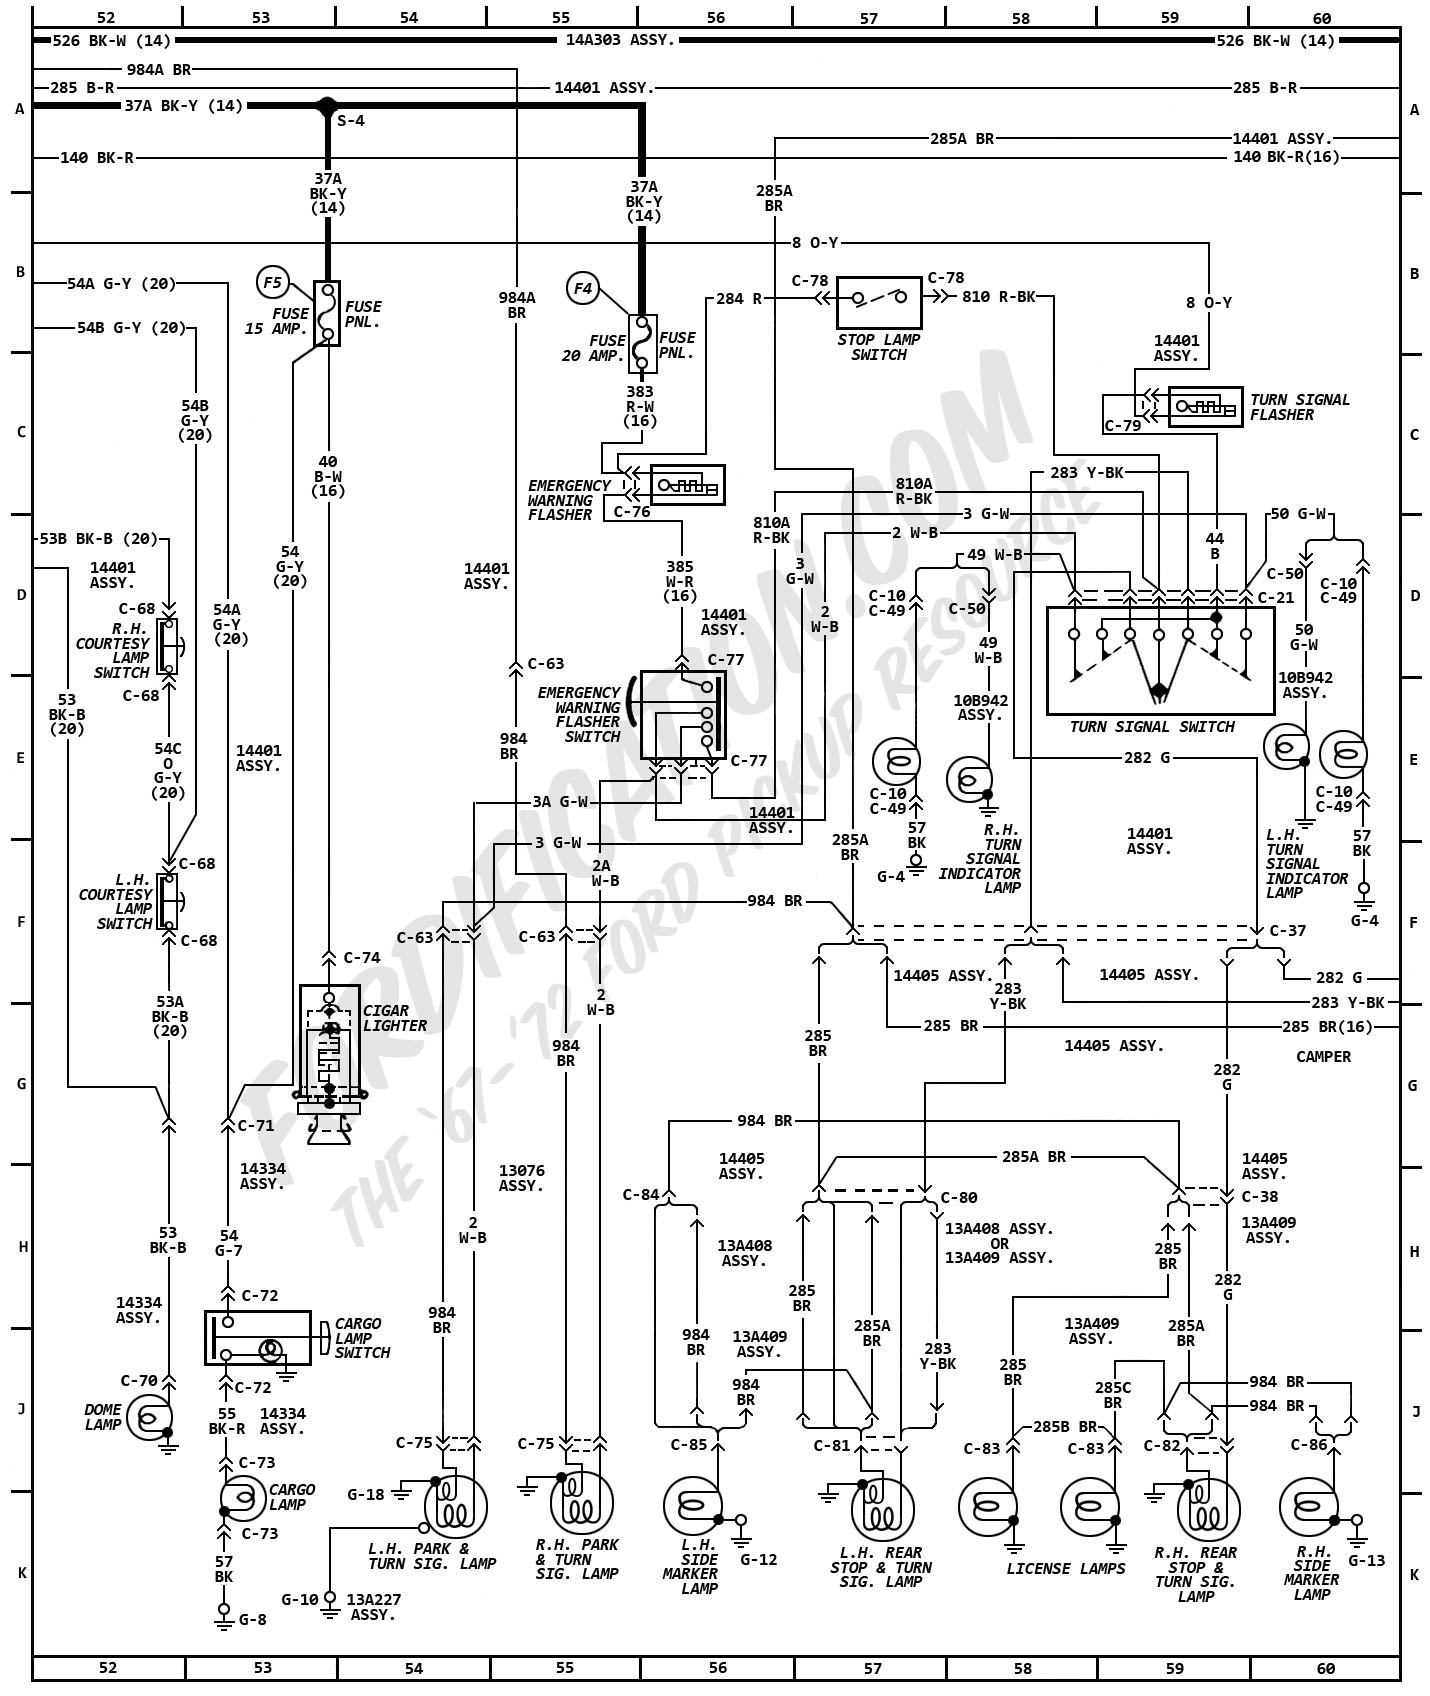 1972 ford truck wiring diagrams fordification com rh fordification com Ford Alternator Wiring Diagram 2002 F150 Wiring Diagram